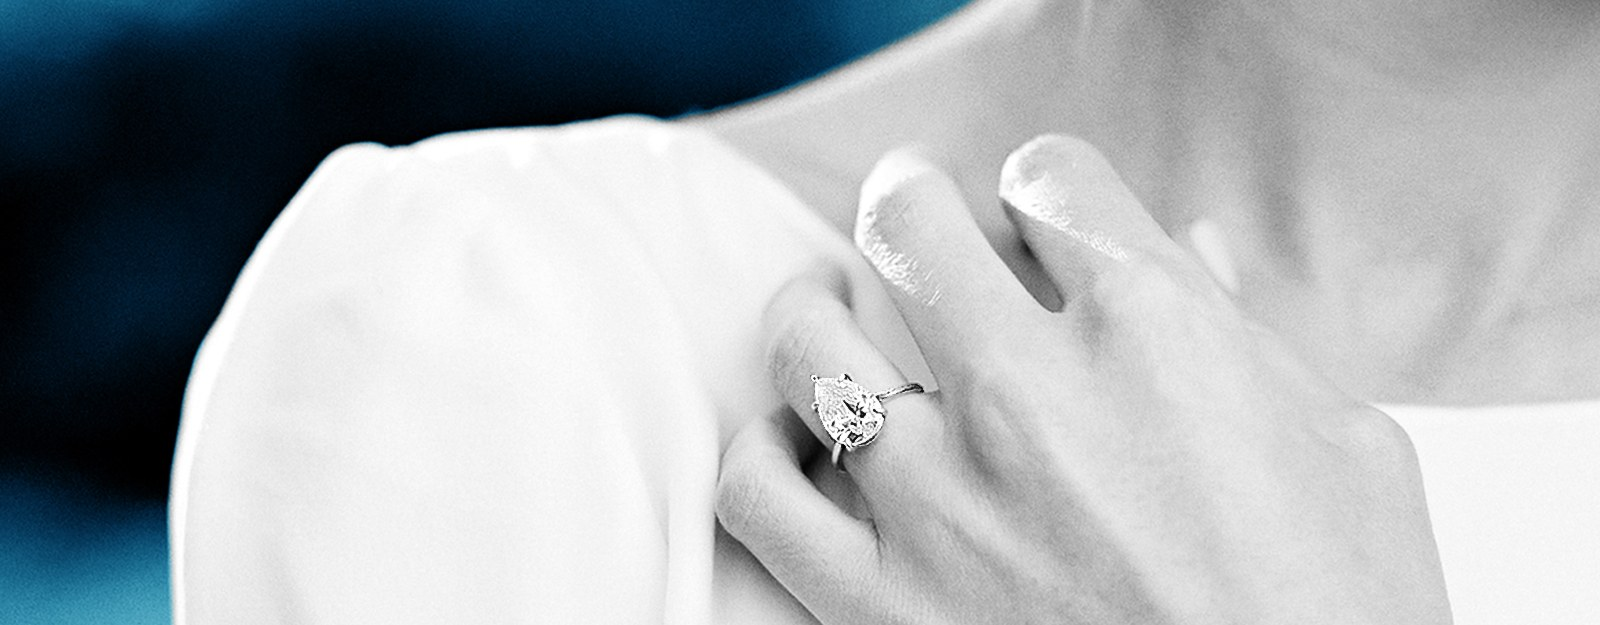 My Engagement Ring Pushes Me Back In The Closet  ,  Glamour , March 2018